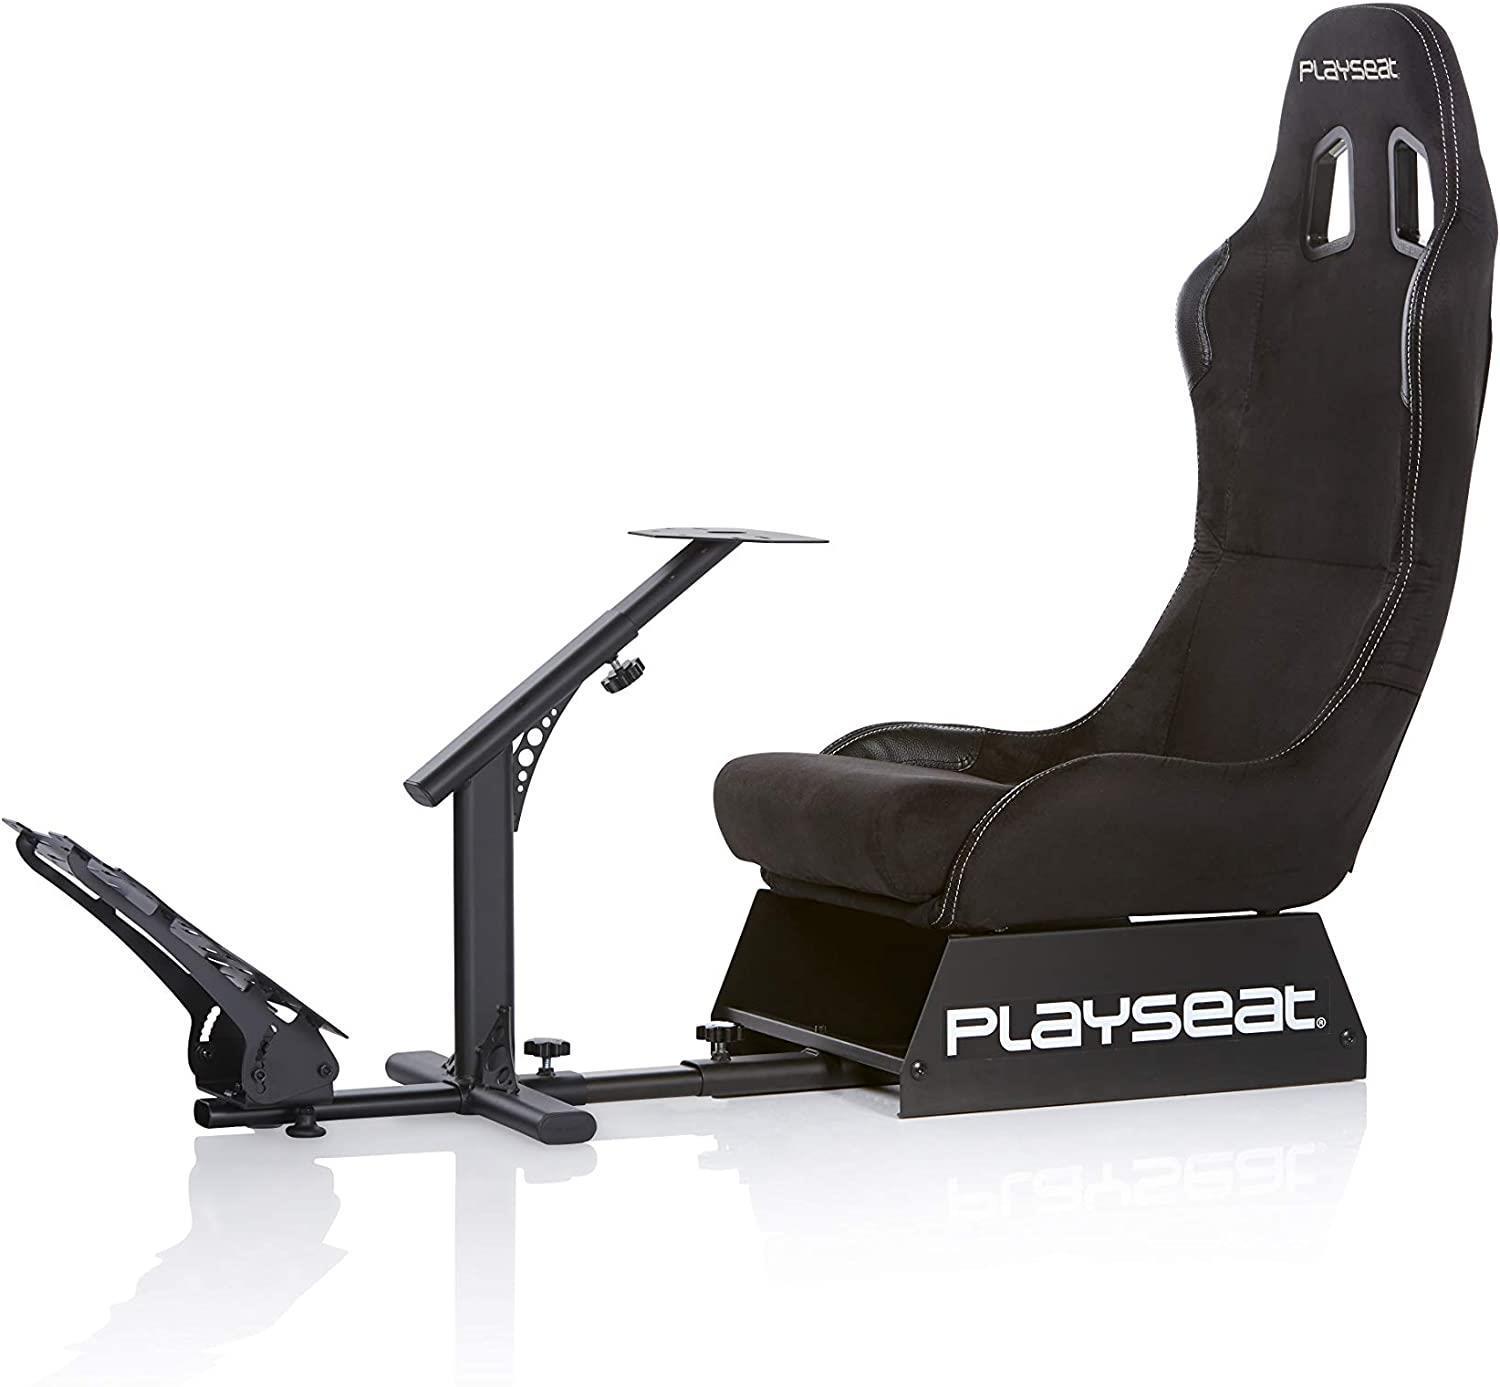 Building a gaming seat for simulators